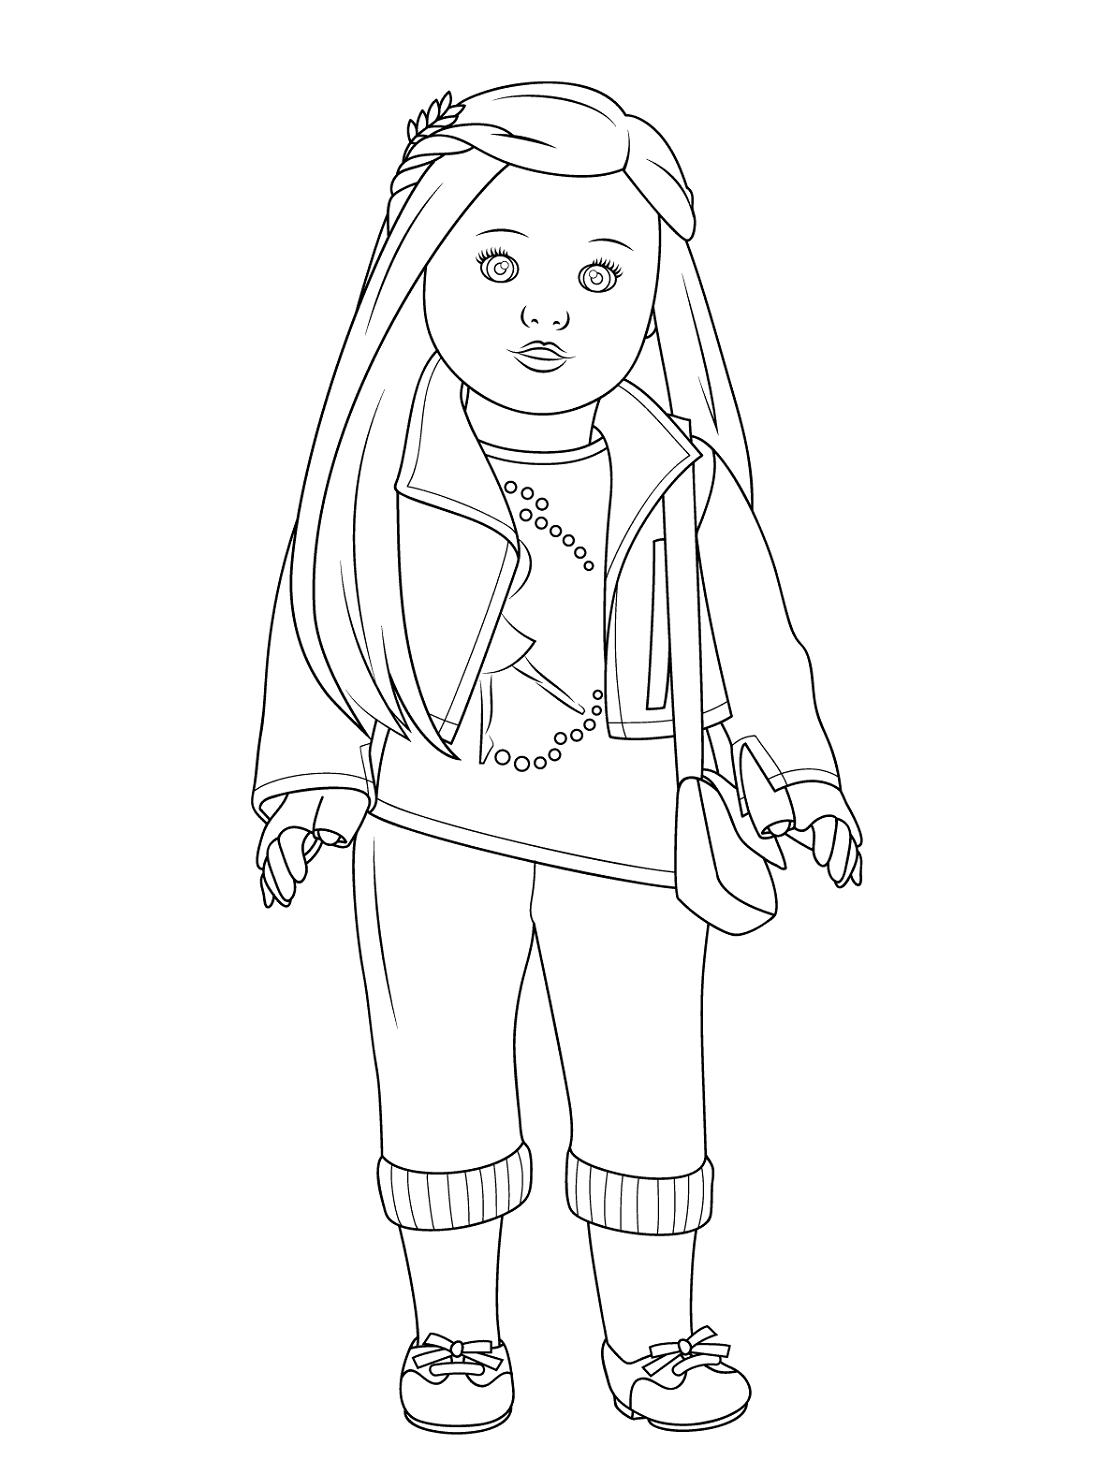 American Girl Doll Coloring Pages Printable Coloring Pages For Girls Baby Coloring Pages American Girl Doll Printables